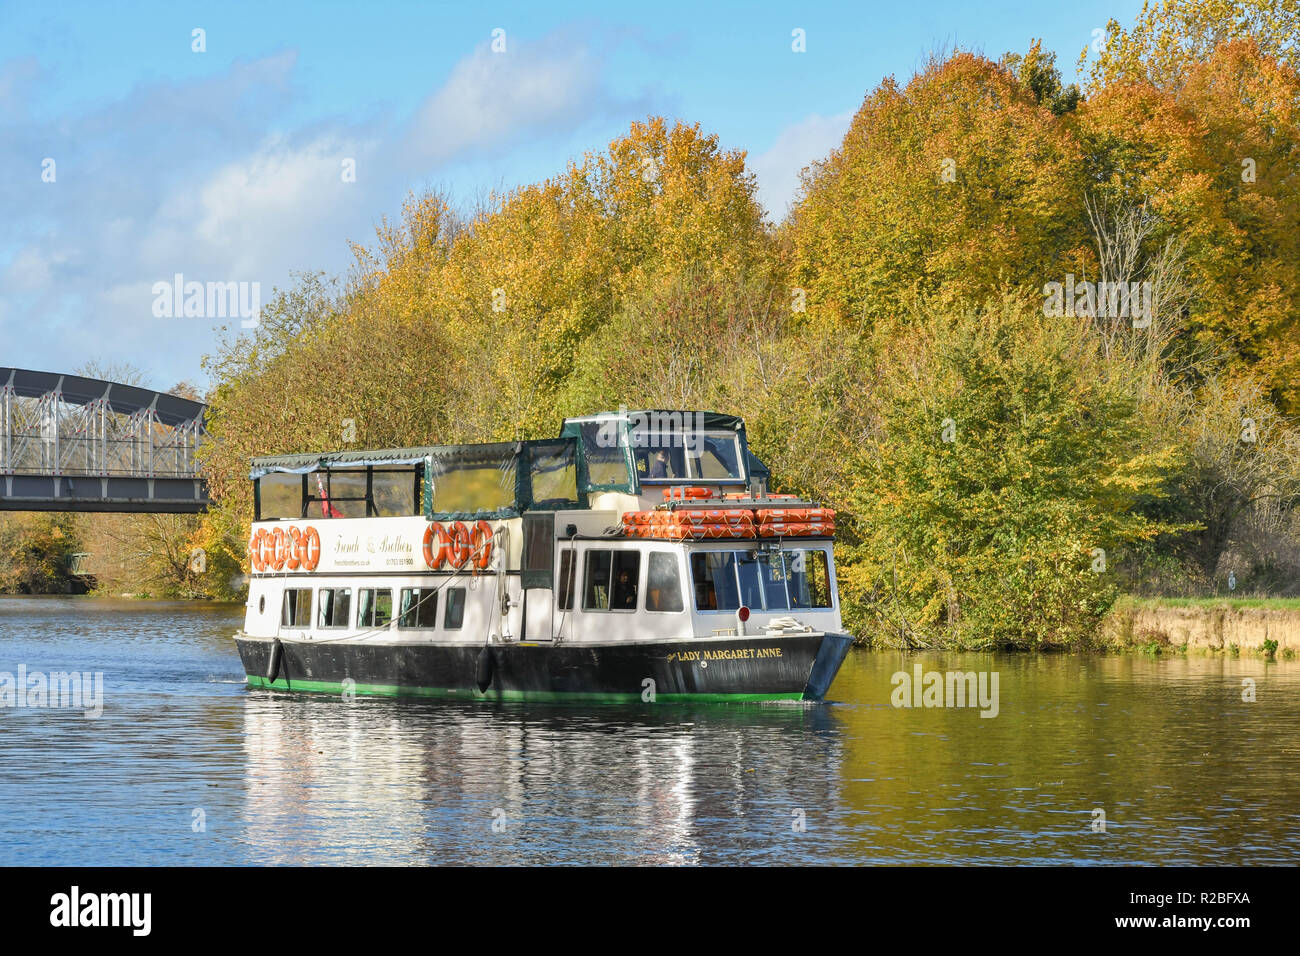 RIVER THAMES, WINDSOR, ENGLAND - NOVEMBER 2018: Tourist sightseeing boat cruising along the River Thames near Windsor. - Stock Image